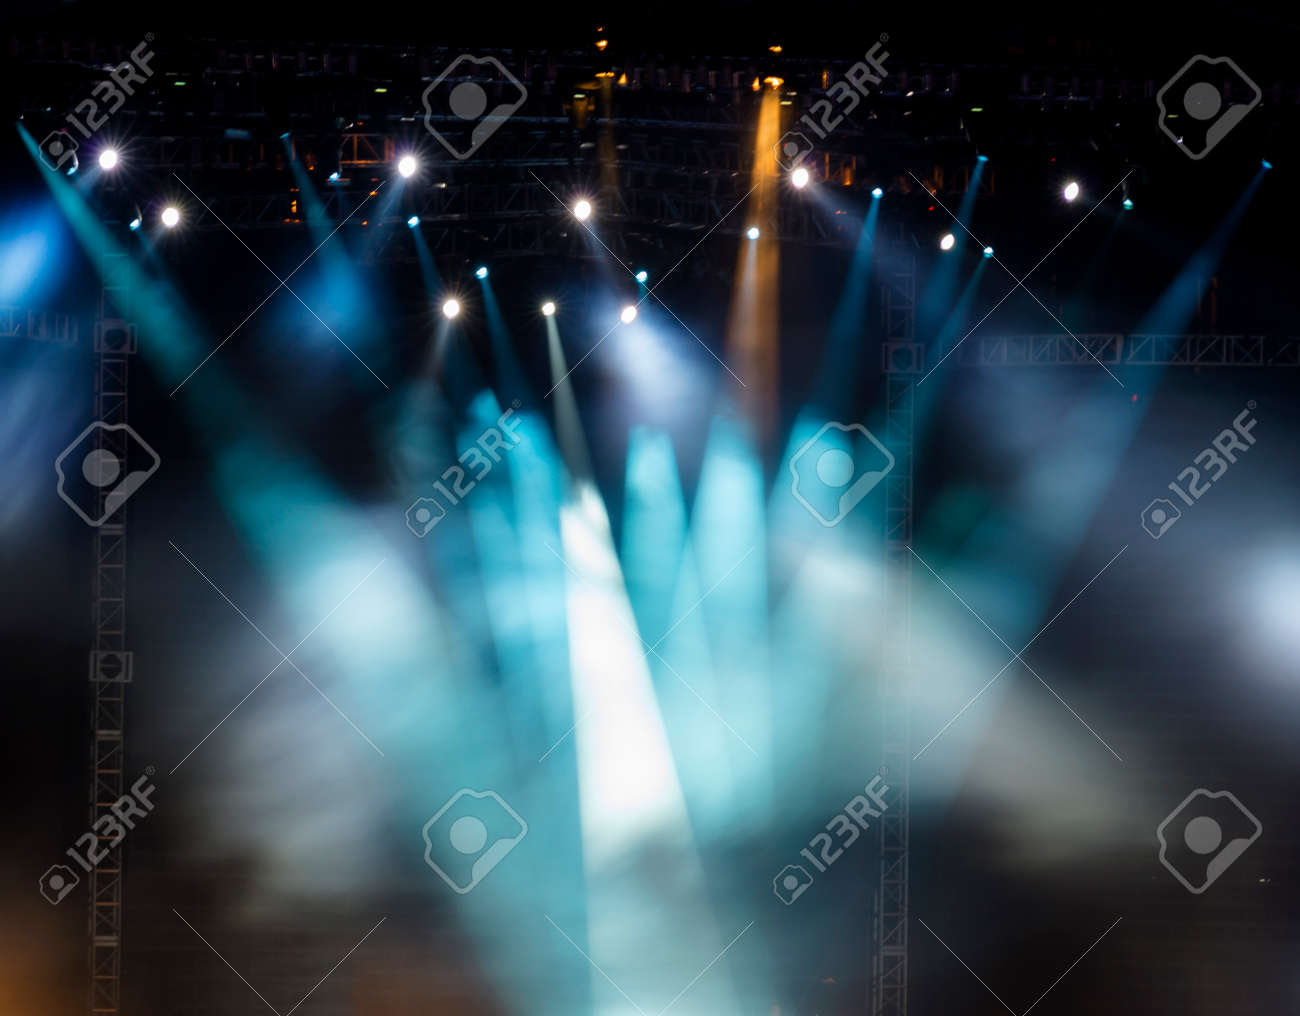 Vector Stage Spotlight with Laser rays - 35774795